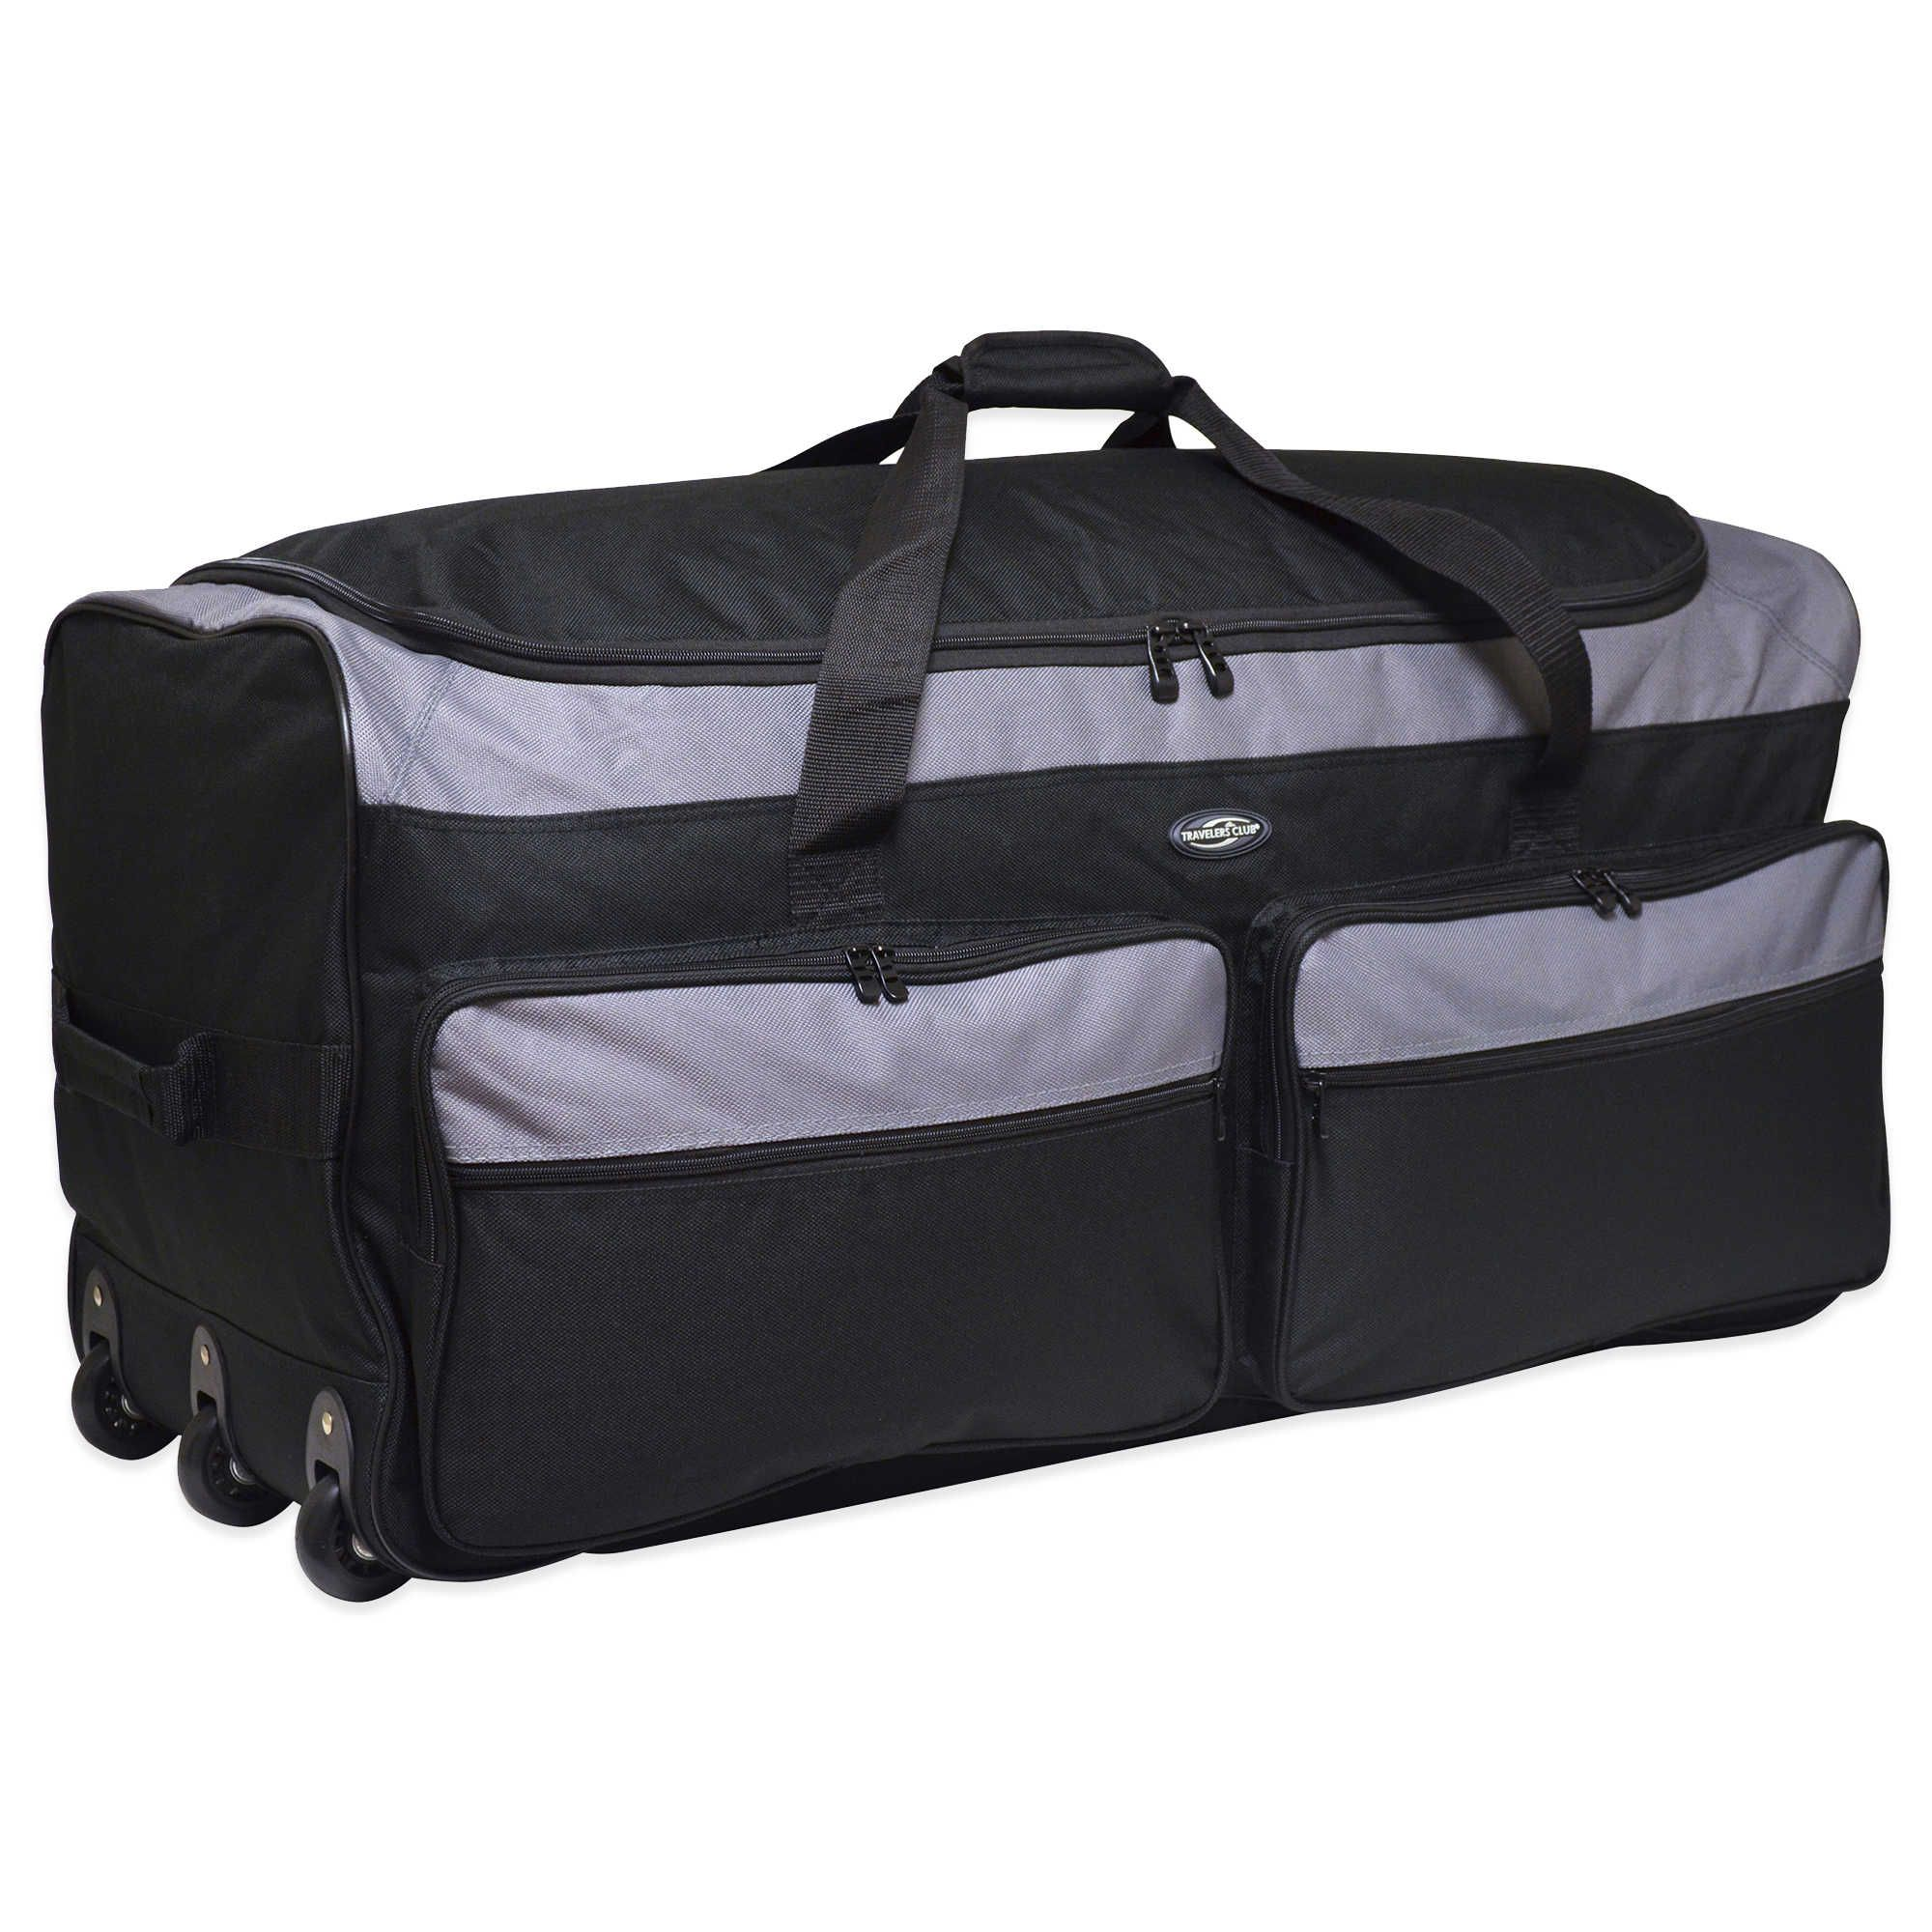 728dd46d48 Traveler s Club 36-Inch Tri-Fold Collapsible Rolling Duffel Bag in Silver